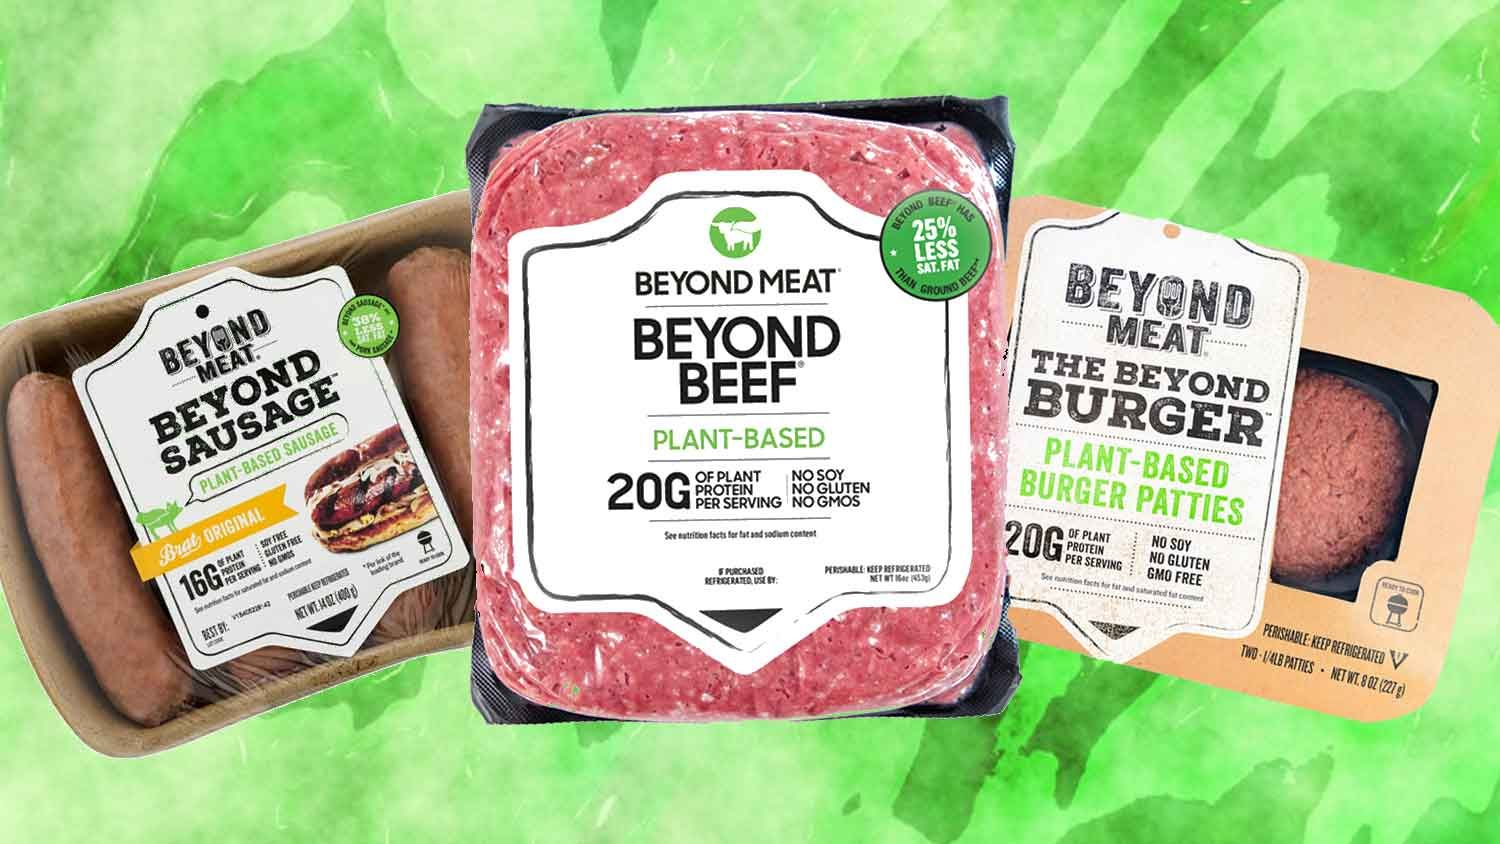 The Complete Vegan Guide To Beyond Meat Vegan Guide Beyond Beef Recipes Beyond Meat Burger